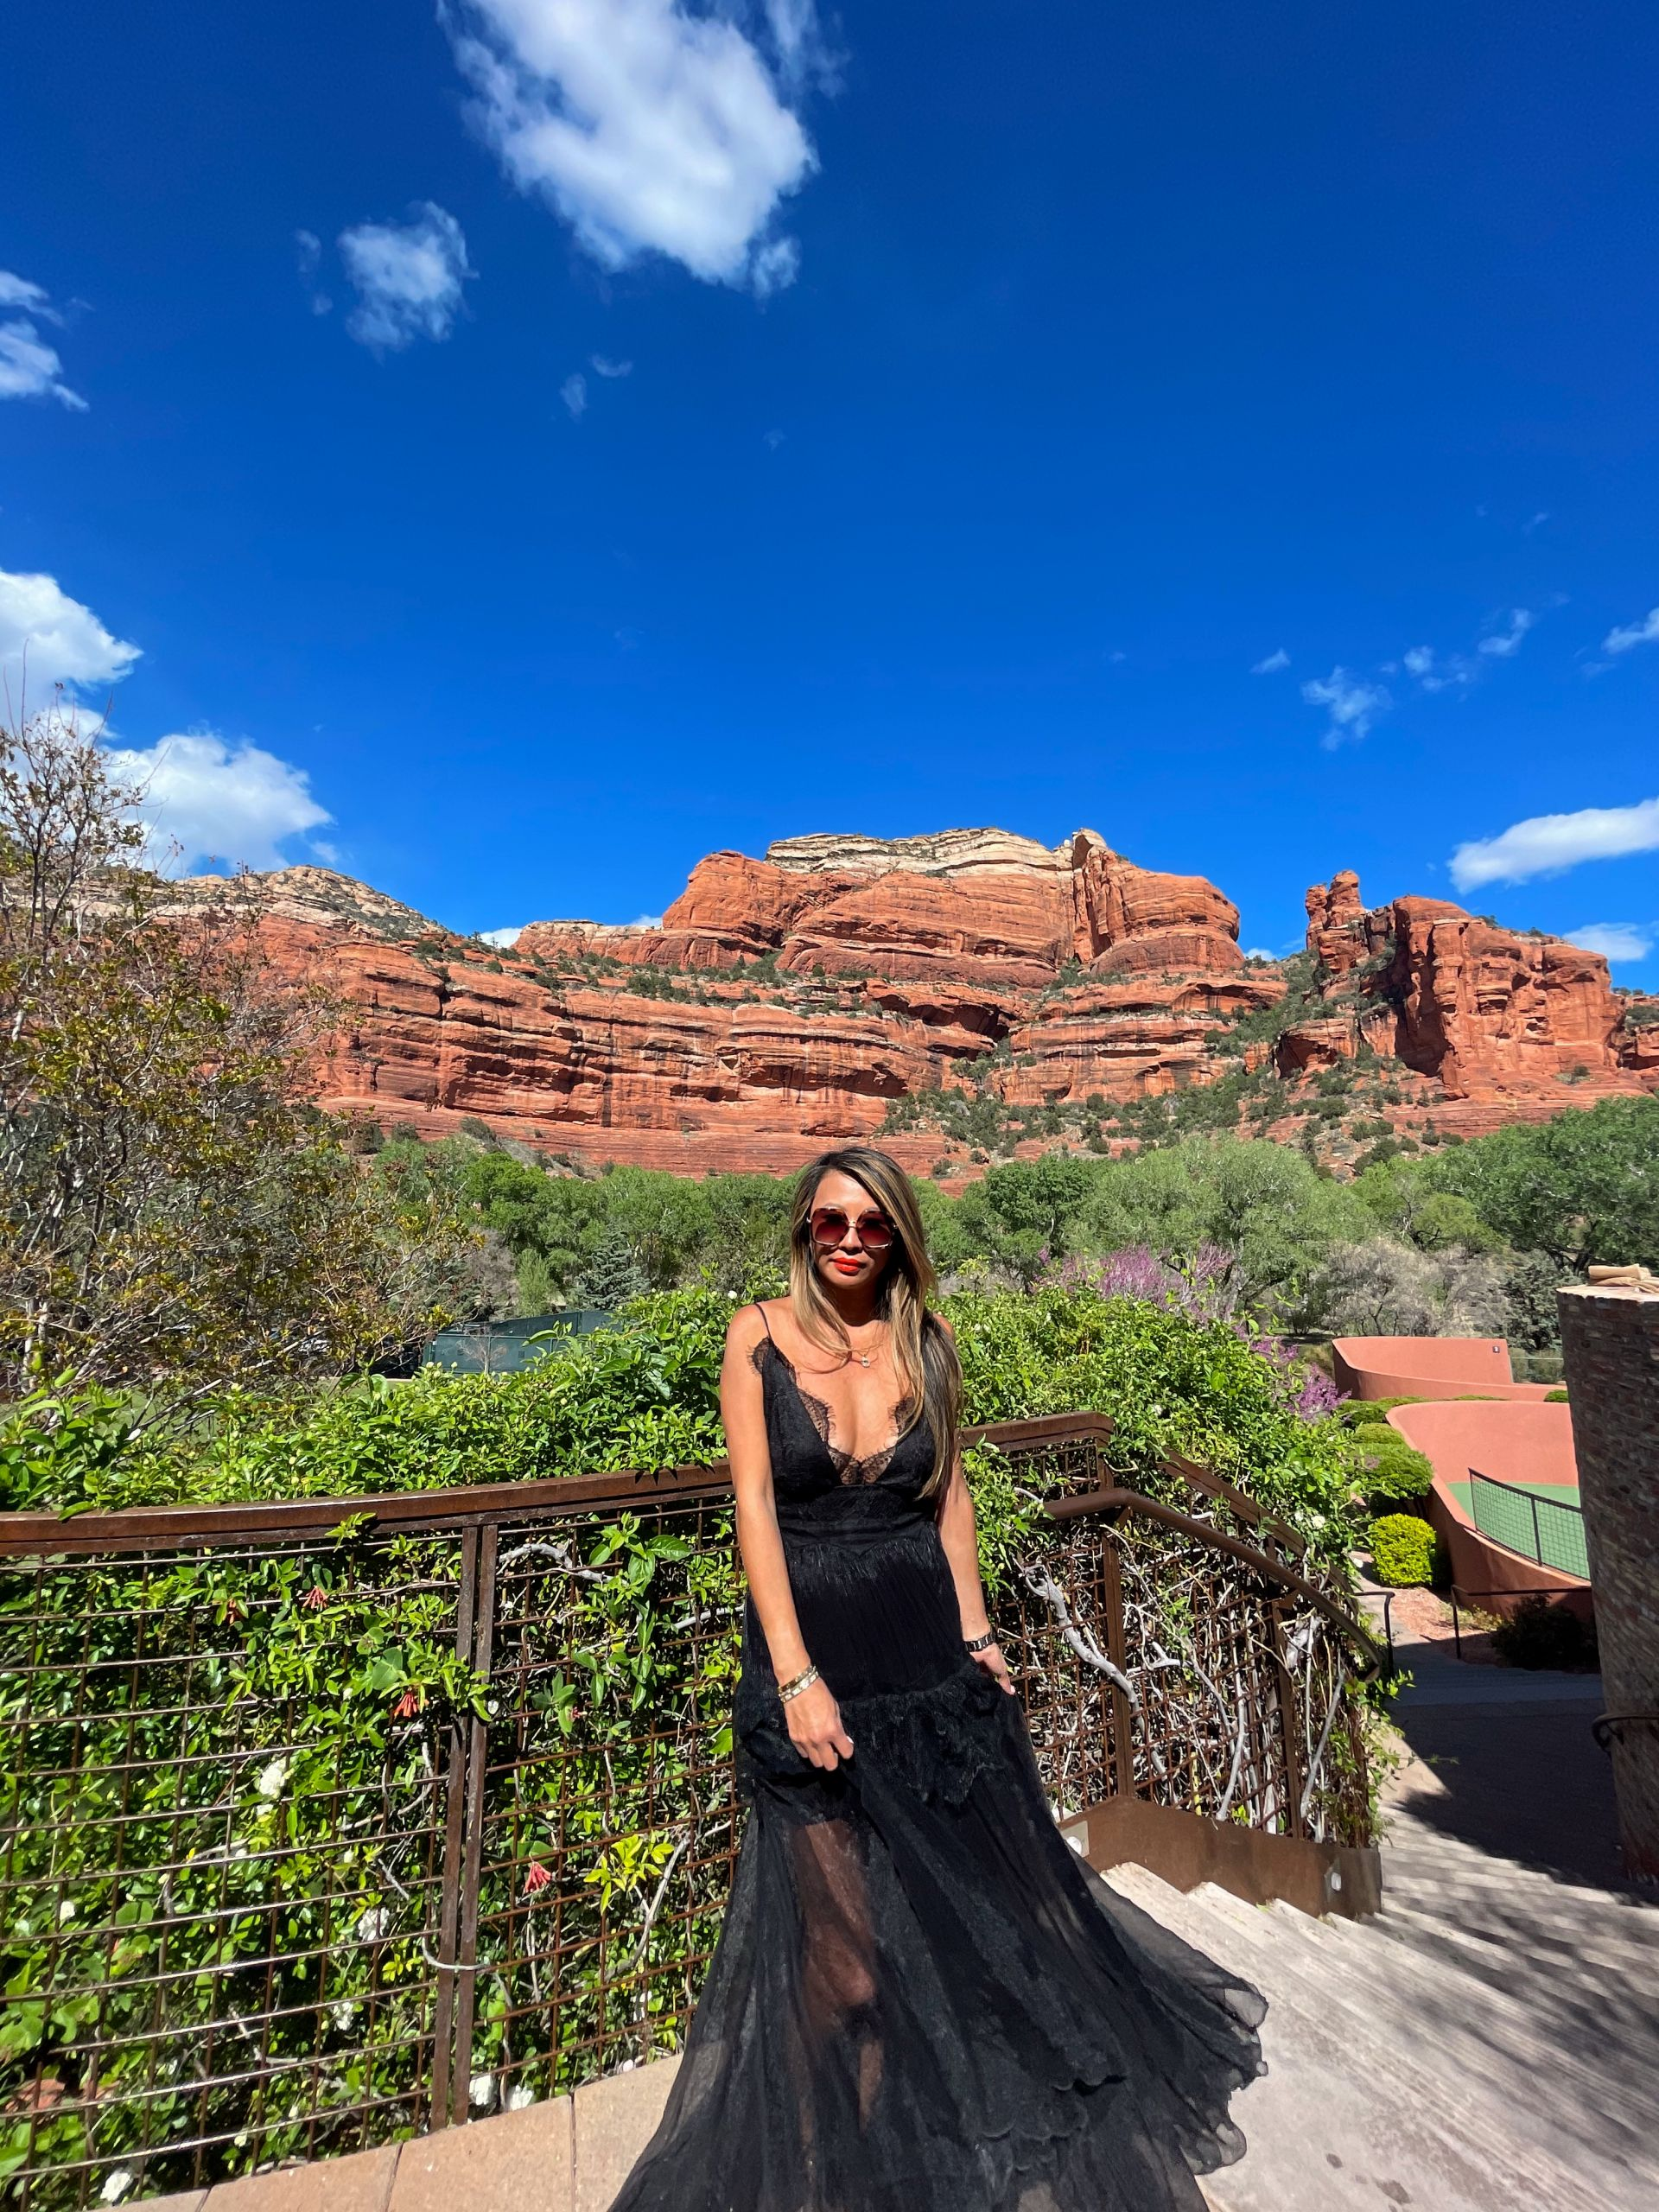 Enchantment Resort, Sedona's Boynton Canyon, Sedona Resort, Sedona Travel Itinerary, SedonaTravel Guide, Tips for Your FirstSedonaTrip,A Weekend Guide toSedona, Guide to Sedona, 2 days in Sedona, Sedona desertphotography, desert photographyideas, Jen Worman, Red Soles and Red Wine